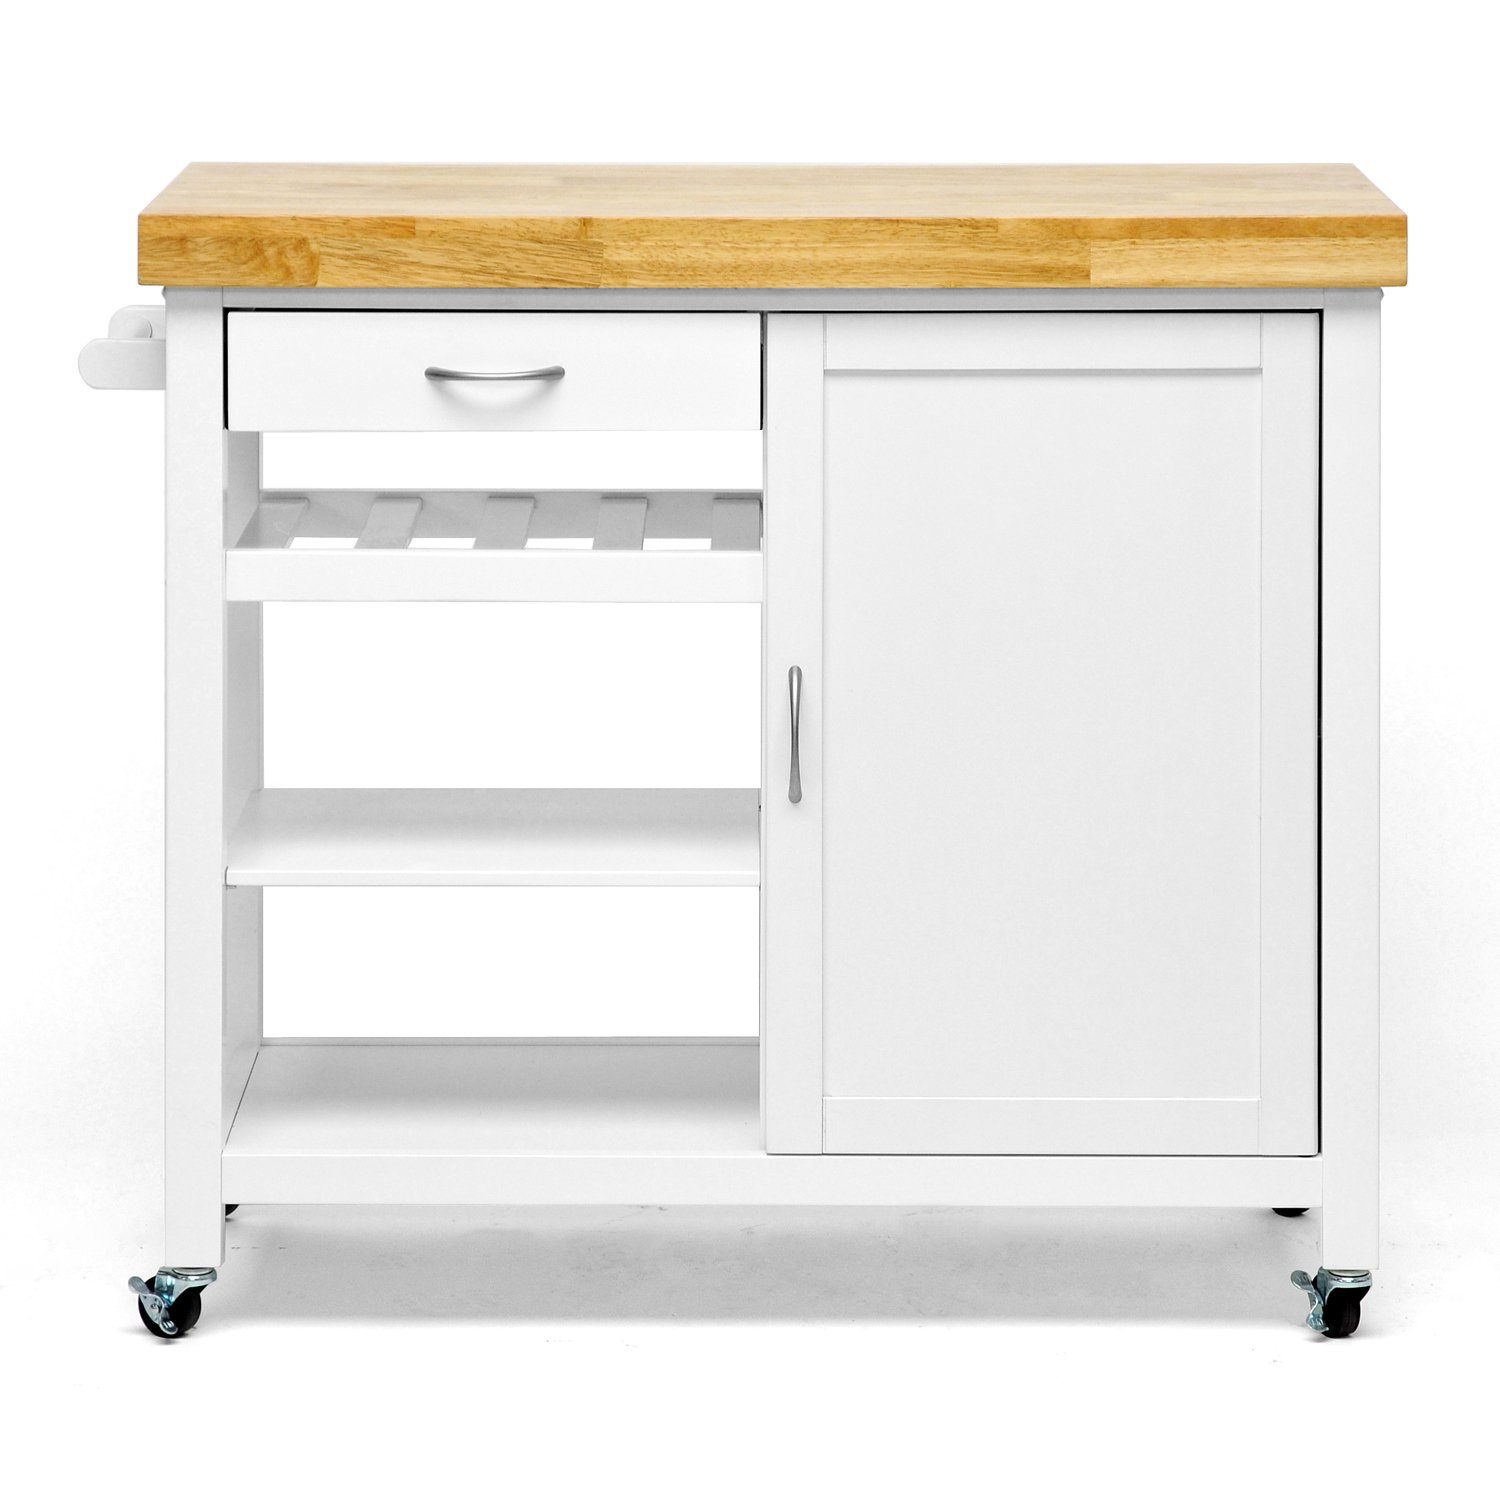 Amazon.com: Baxton Studio Denver Modern Kitchen Cart/Island with ...